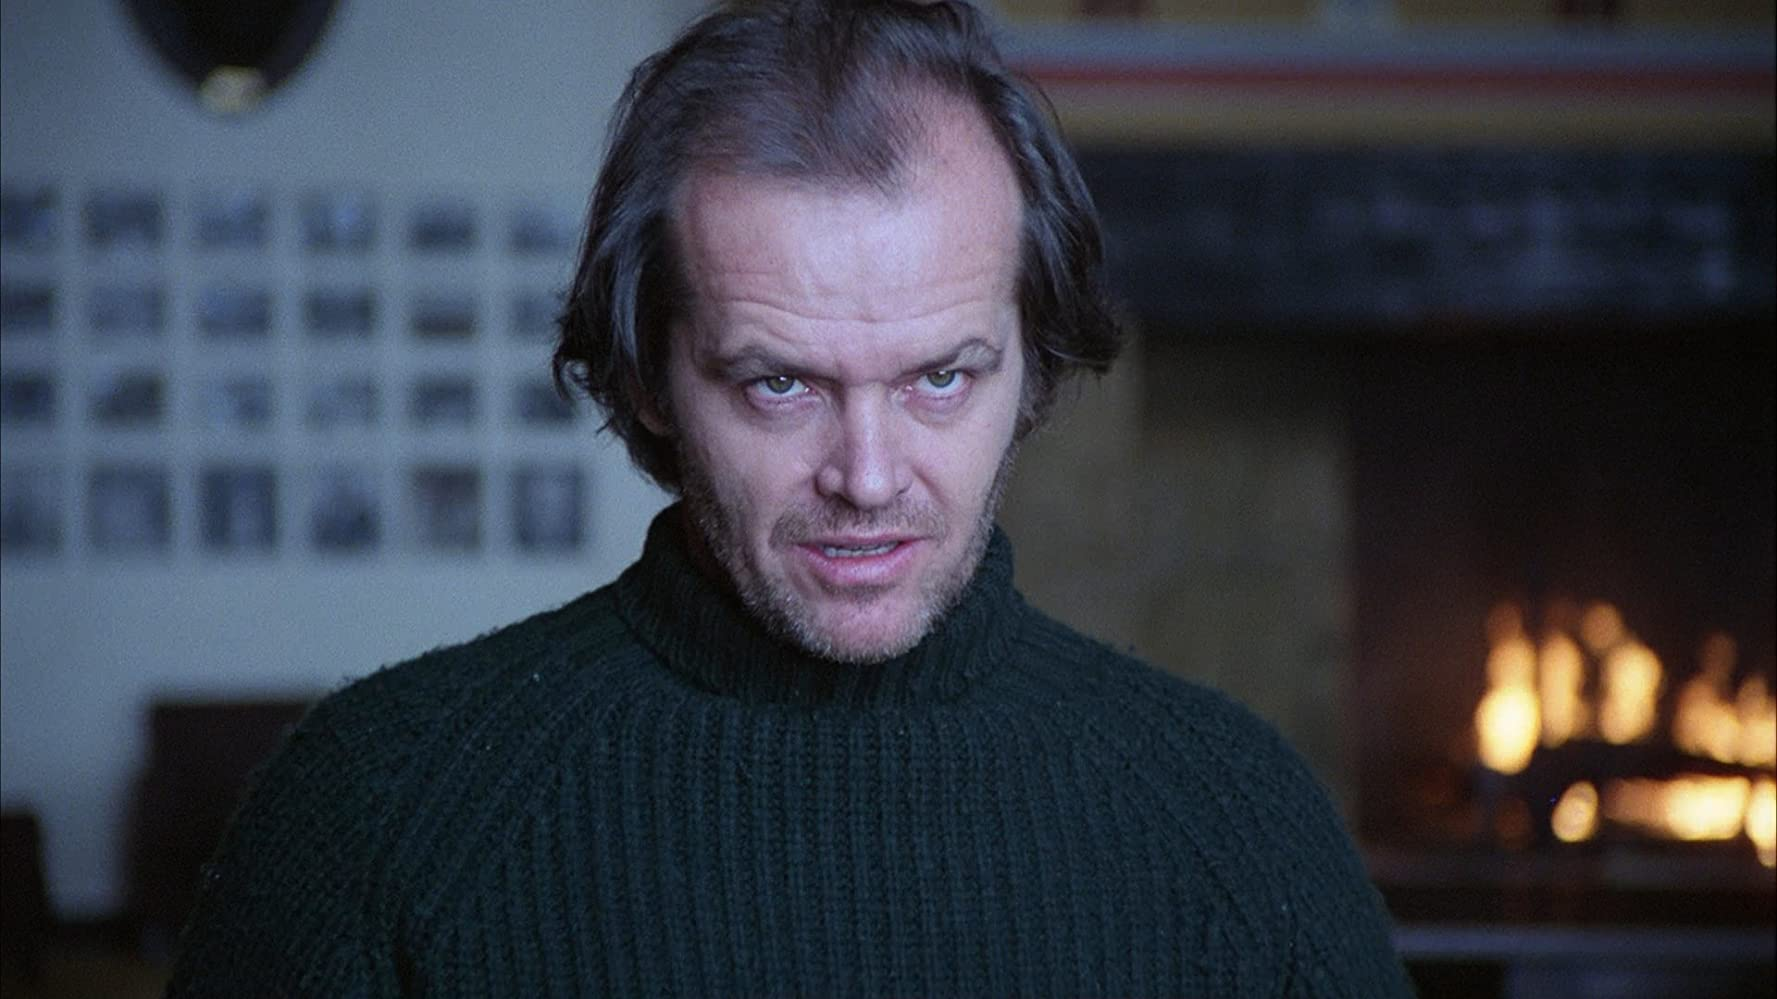 Jack Nicholson / The Shining / Warner Bros. © 2019. All rights reserved.